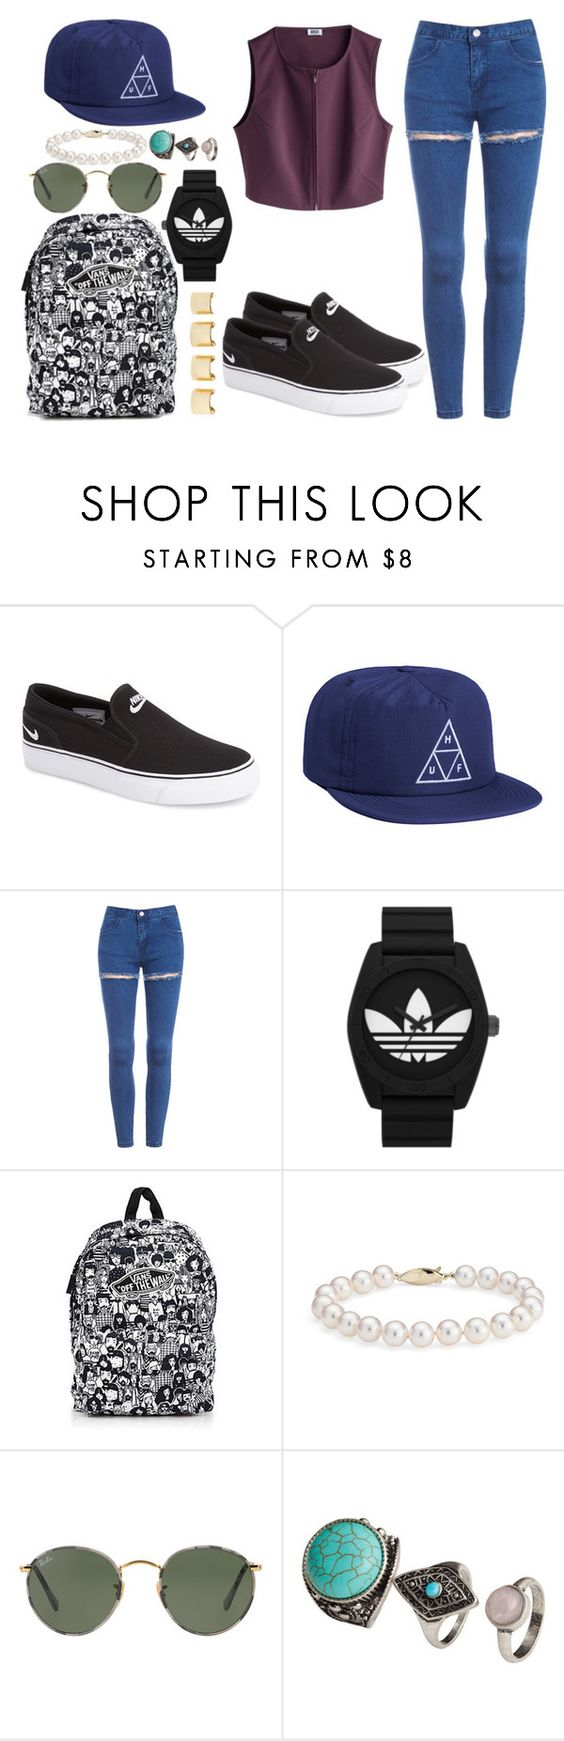 """24/02"" by macarena01 ❤ liked on Polyvore featuring NIKE, HUF, adidas Originals, Vans, Luv Aj, Blue Nile, Ray-Ban, H&M, women's clothing and women"